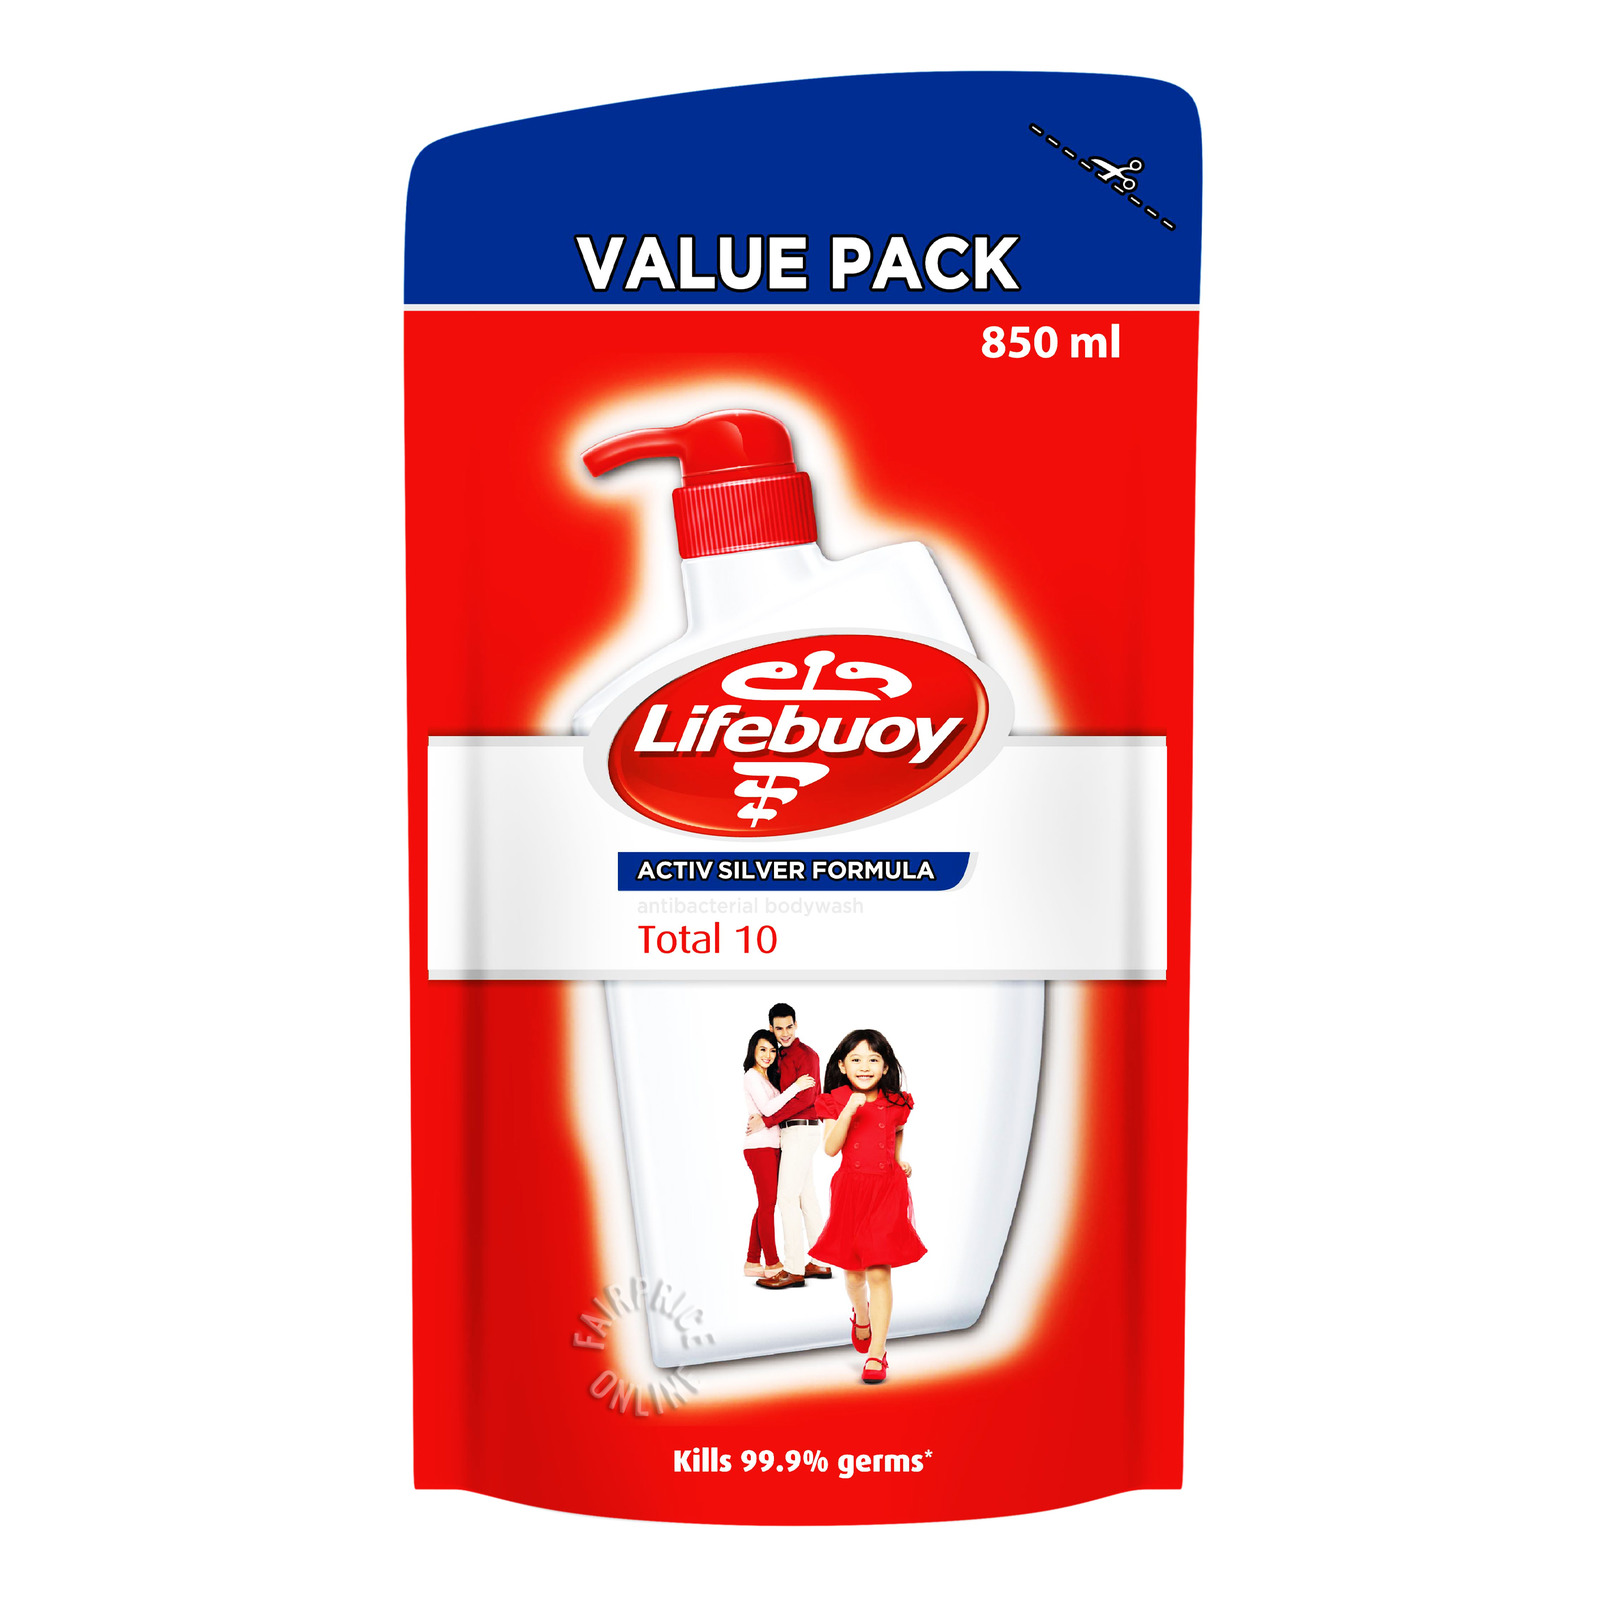 Lifebuoy Antibacterial Body Wash Refill - Total 10